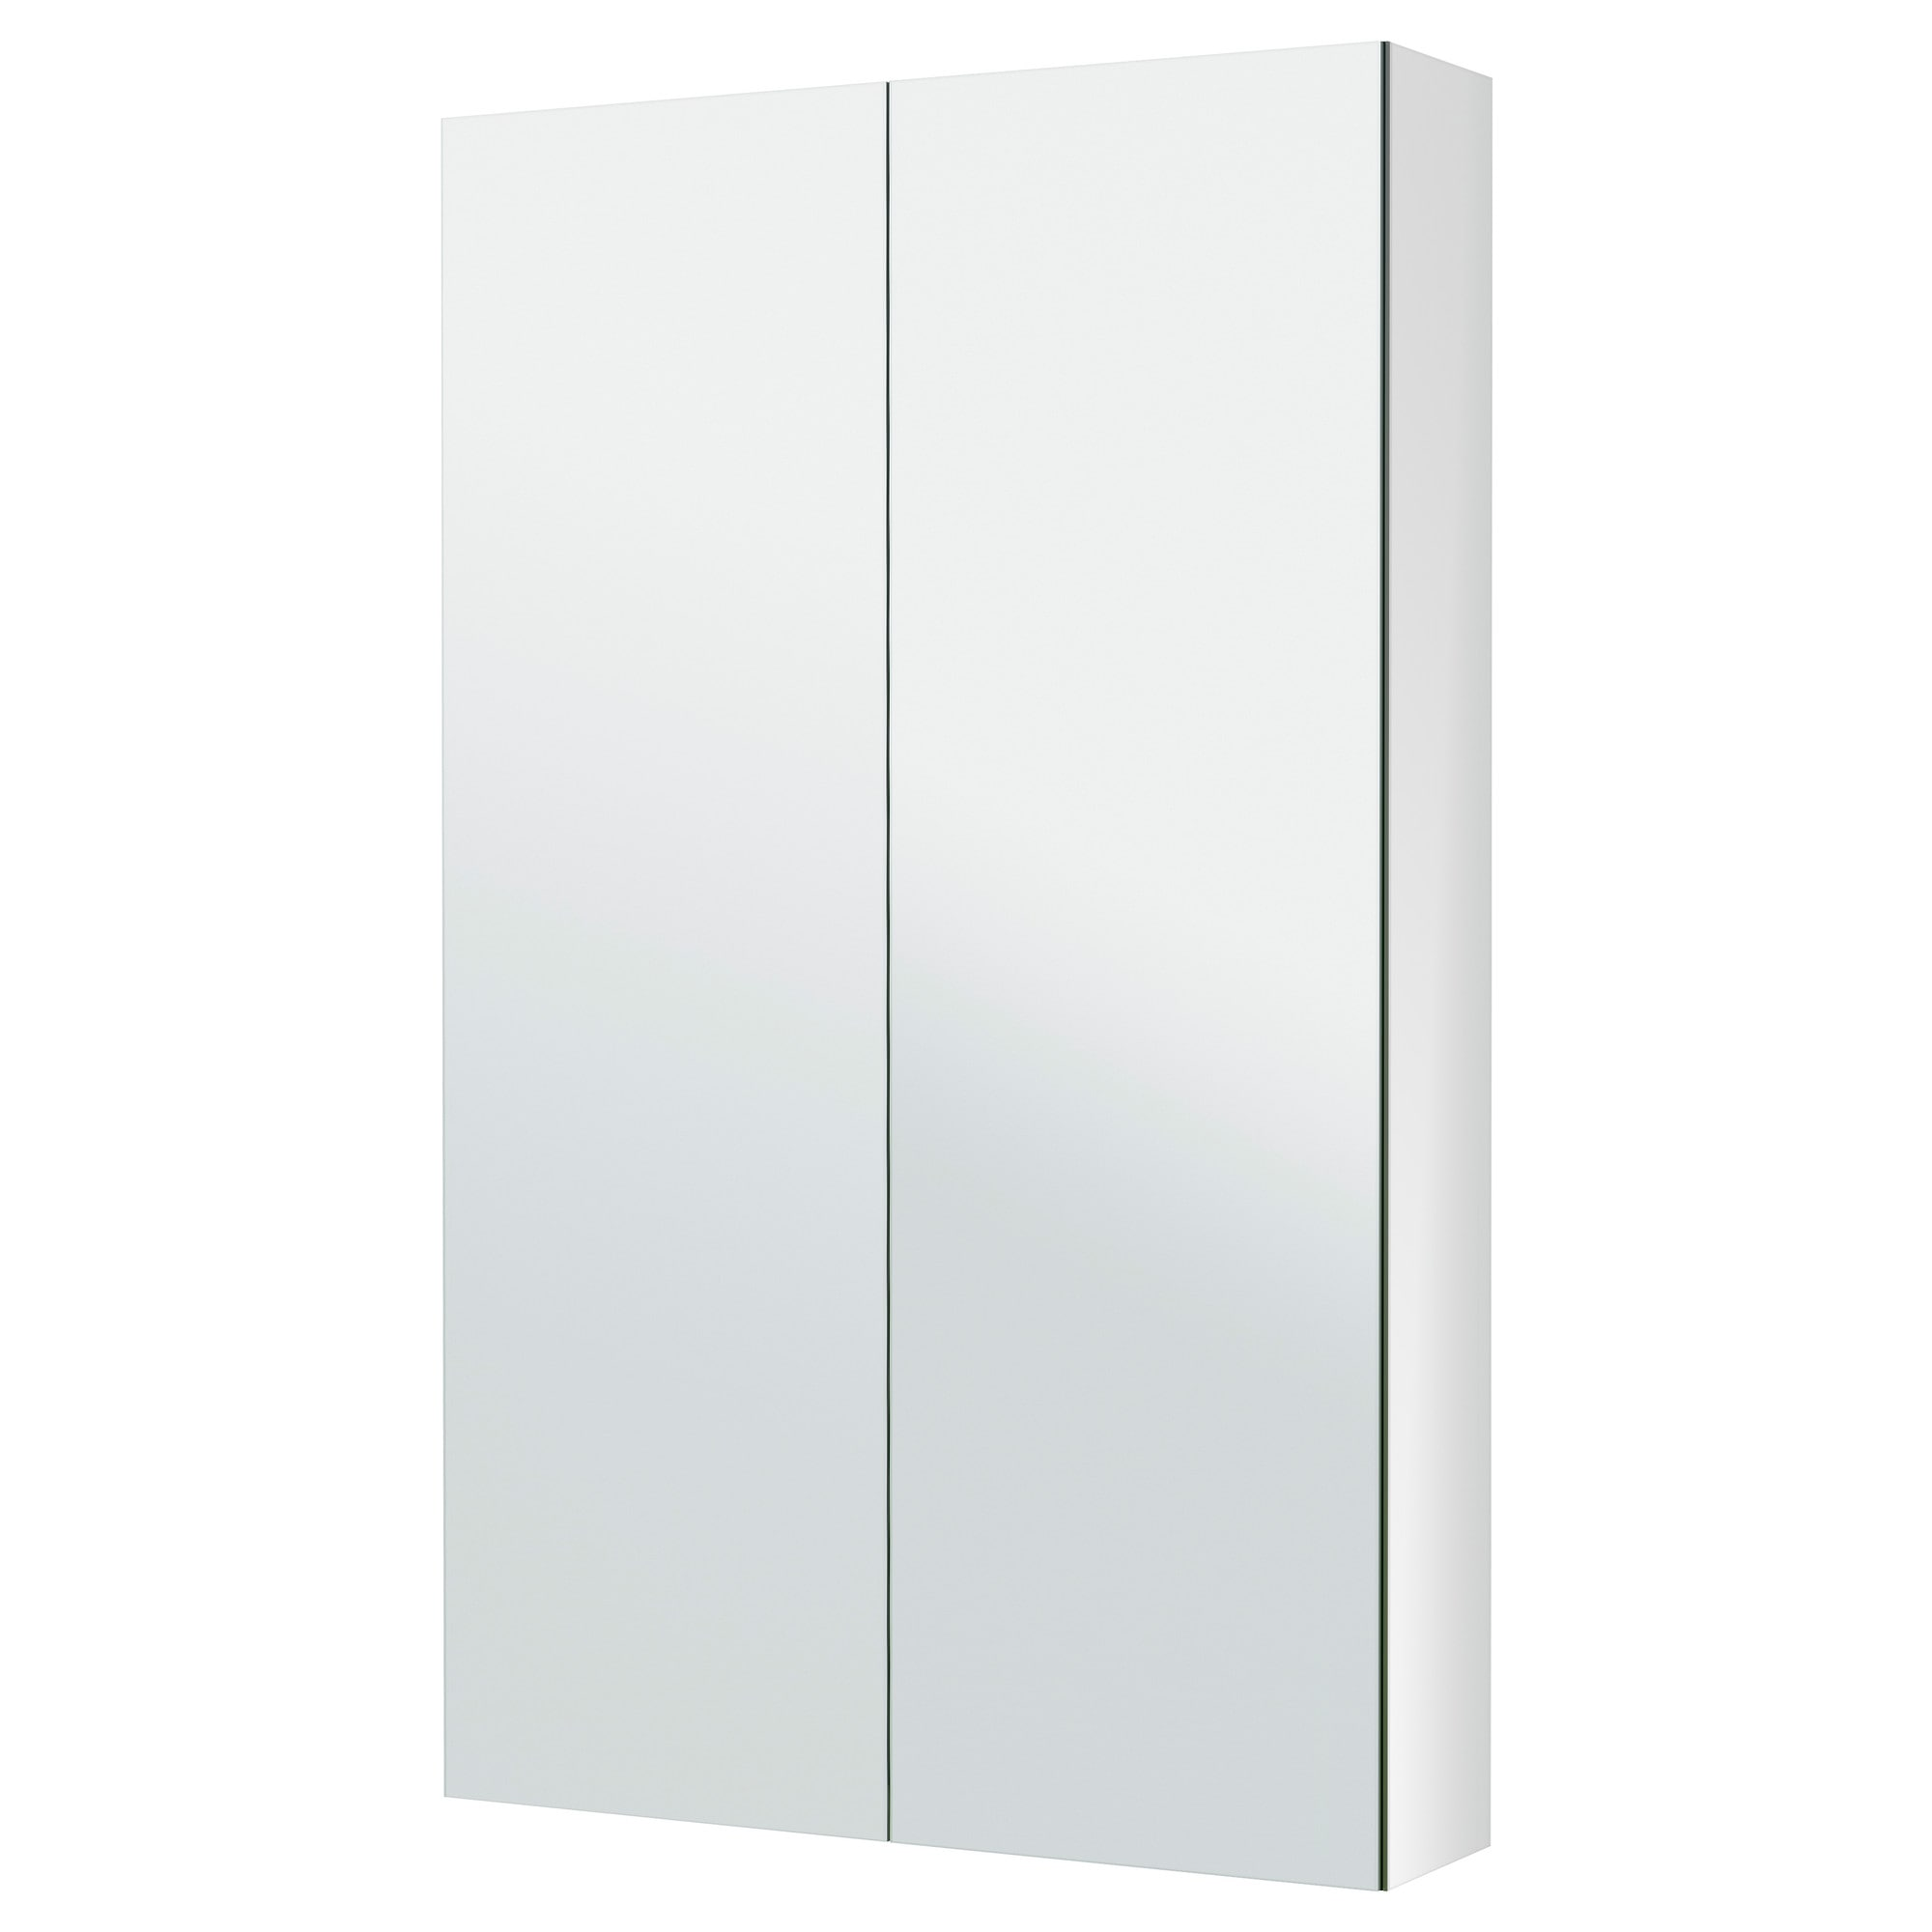 Framed Bathroom Mirrors At Ikea bedding, bedroom curtains & rugs - ikea